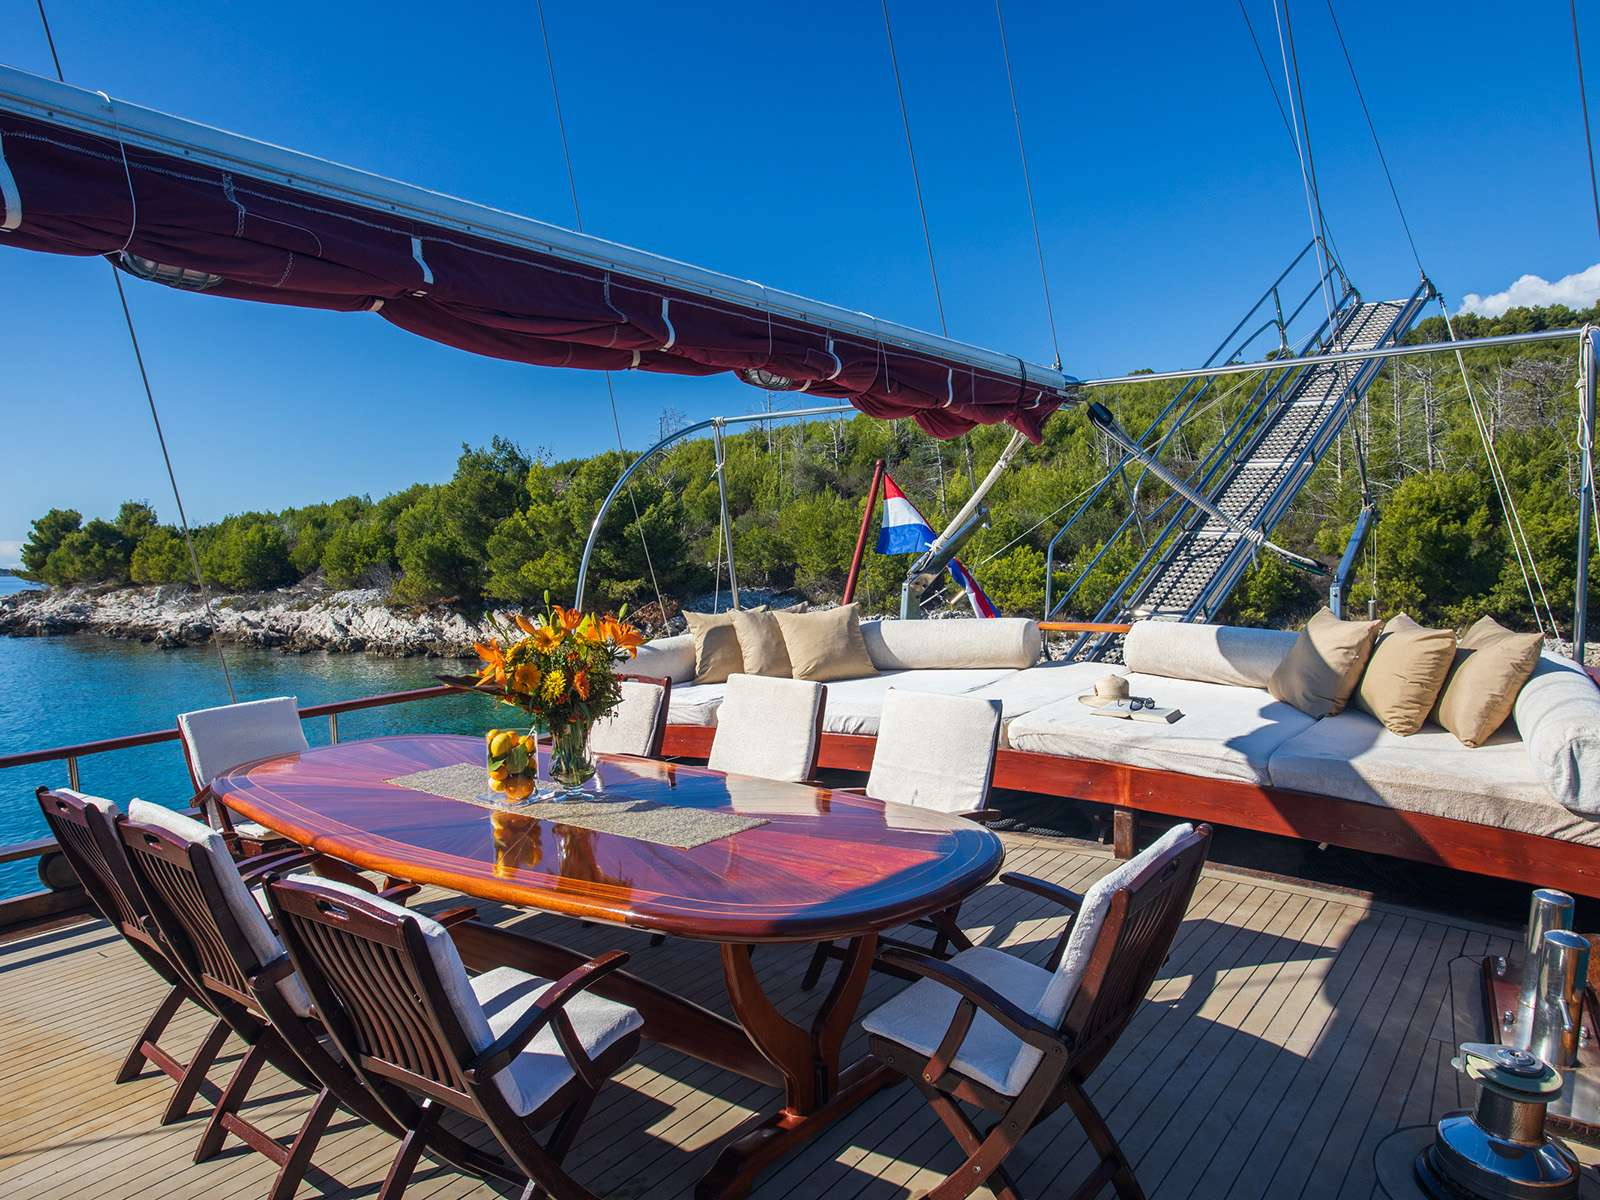 NOSTRA VITA - Dining area on Aft deck